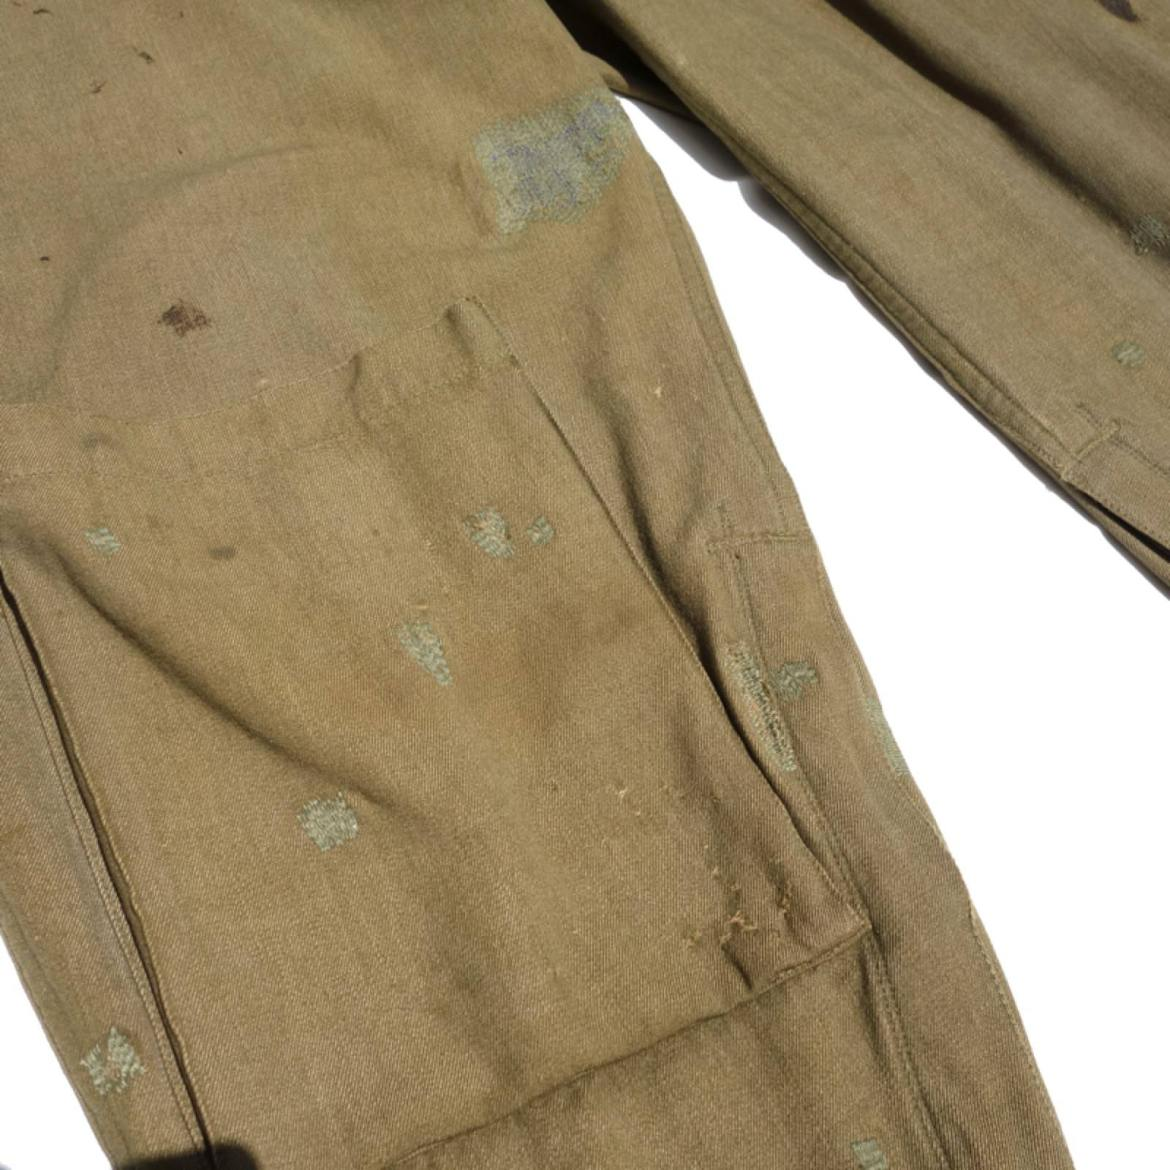 U.S. WWII Army Air Force Flight Suit